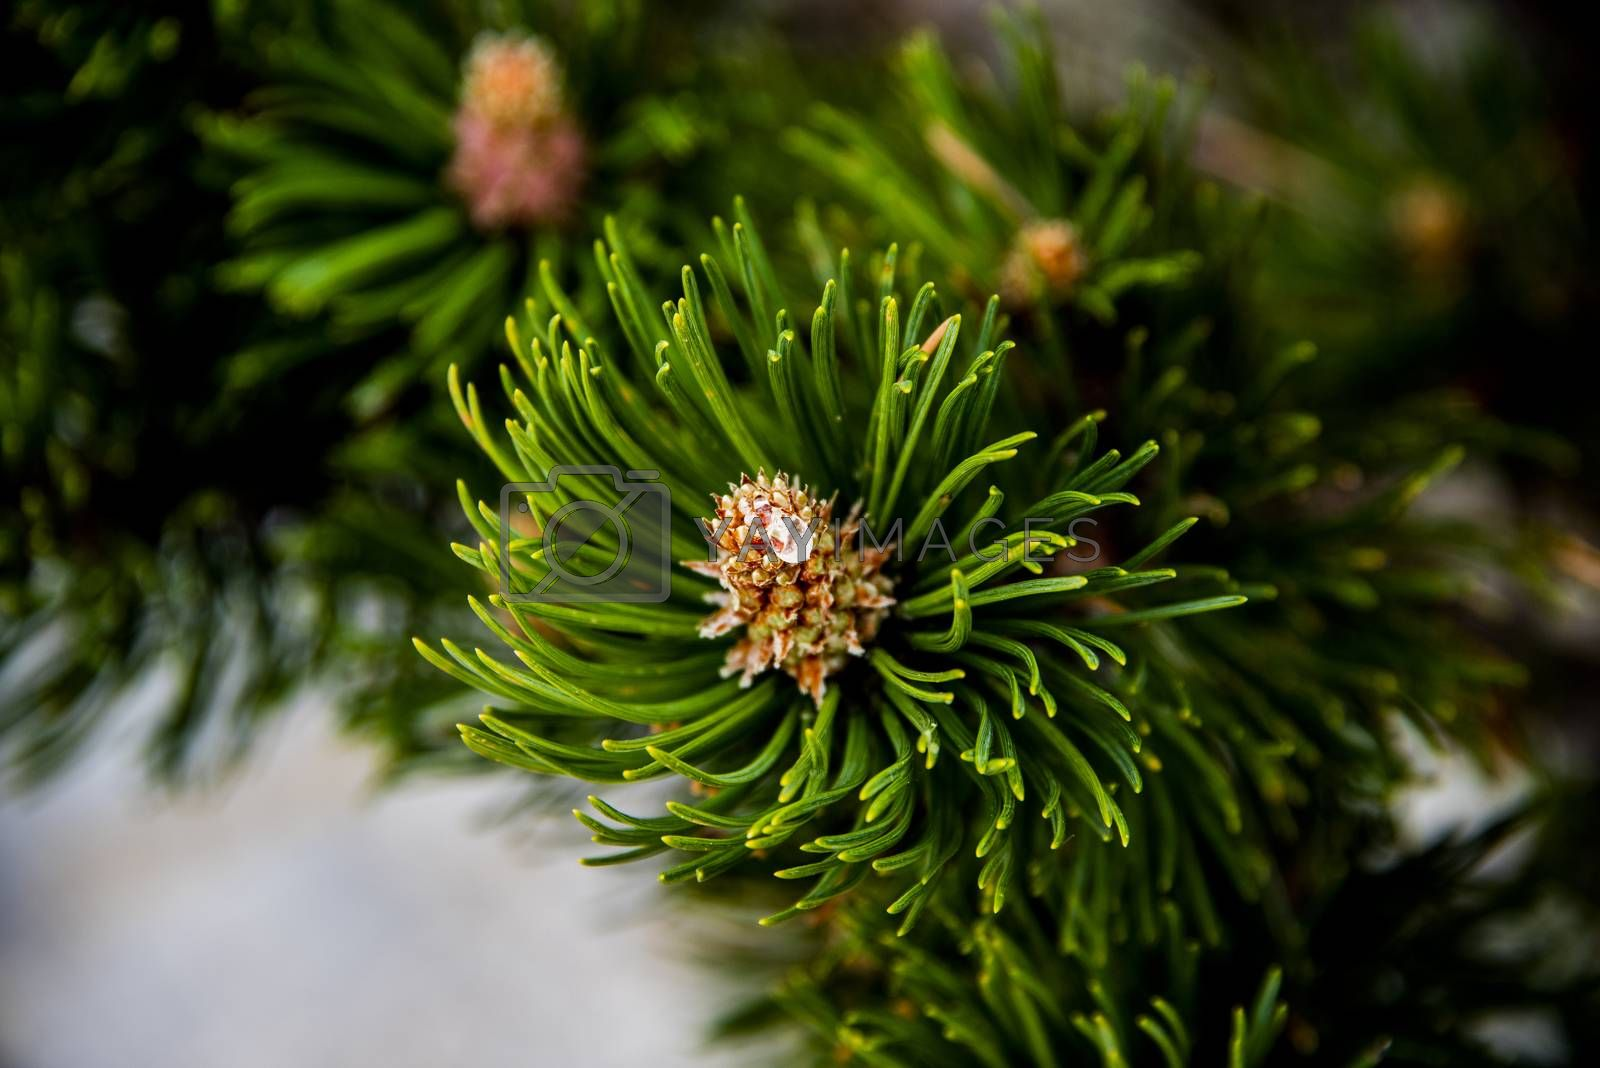 close up of a pine cone of a wild mountain pine in Monte Baldo near Lake Garda, Verona, Italy